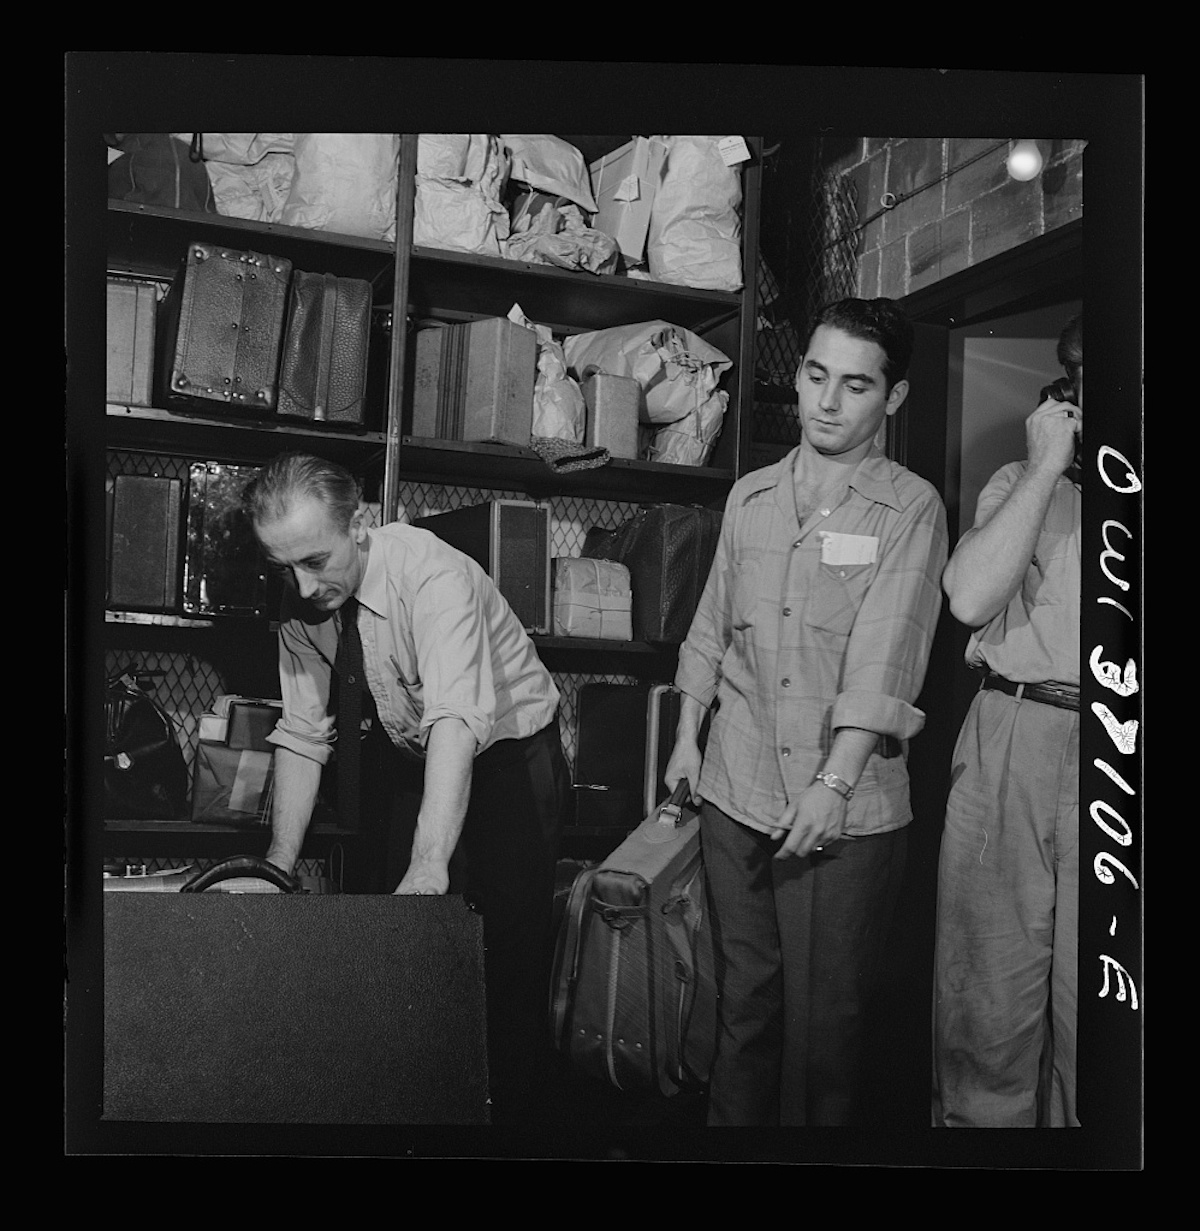 Pittsburgh, Pennsylvania. Baggage clerks at the Greyhound bus terminal